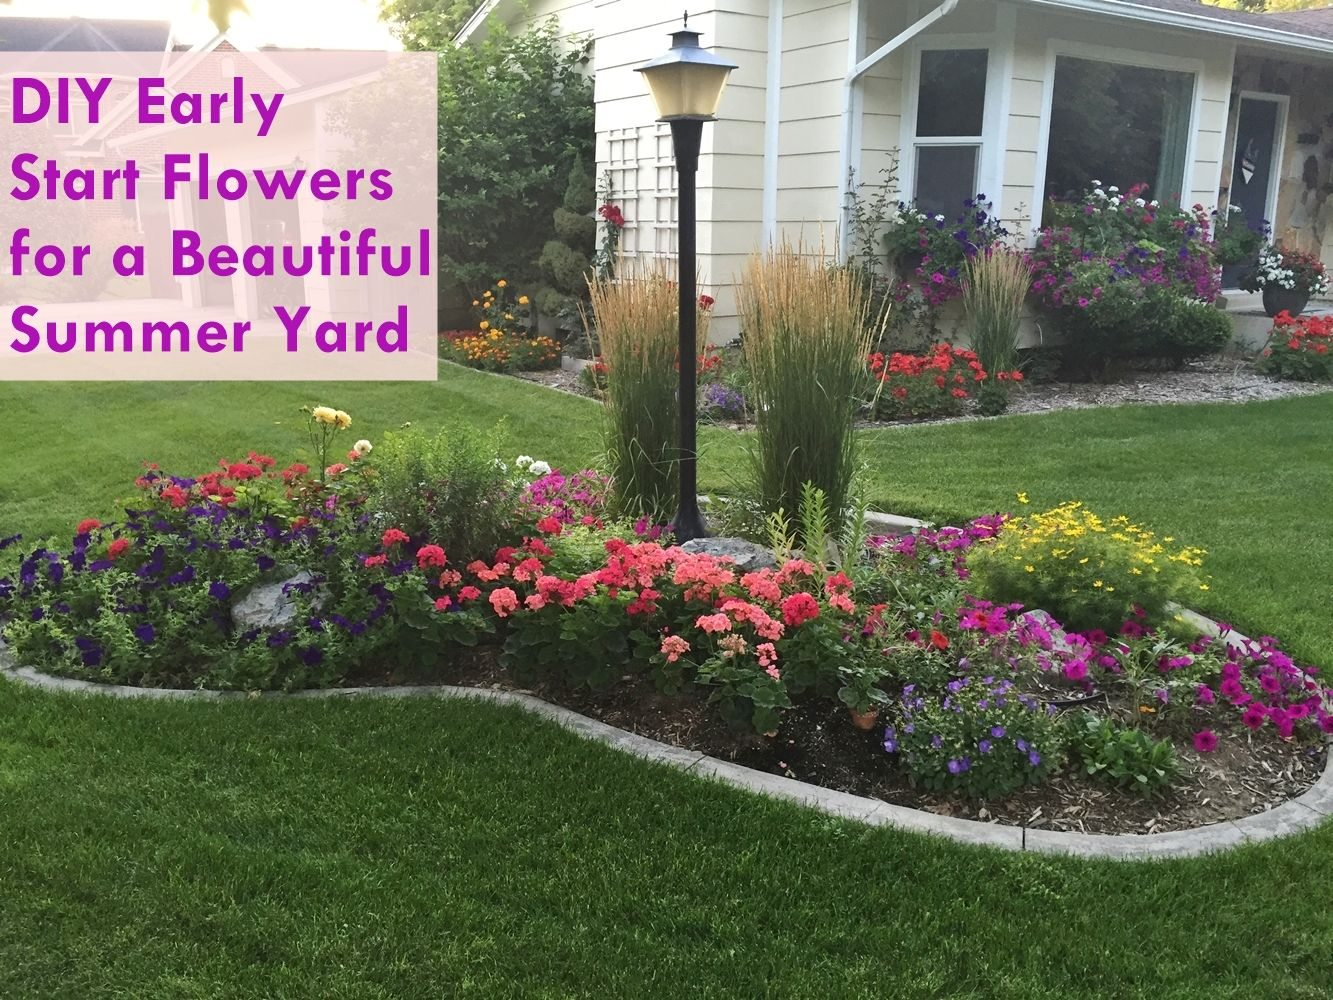 DIY Early Start Flowers for Flower Boxes